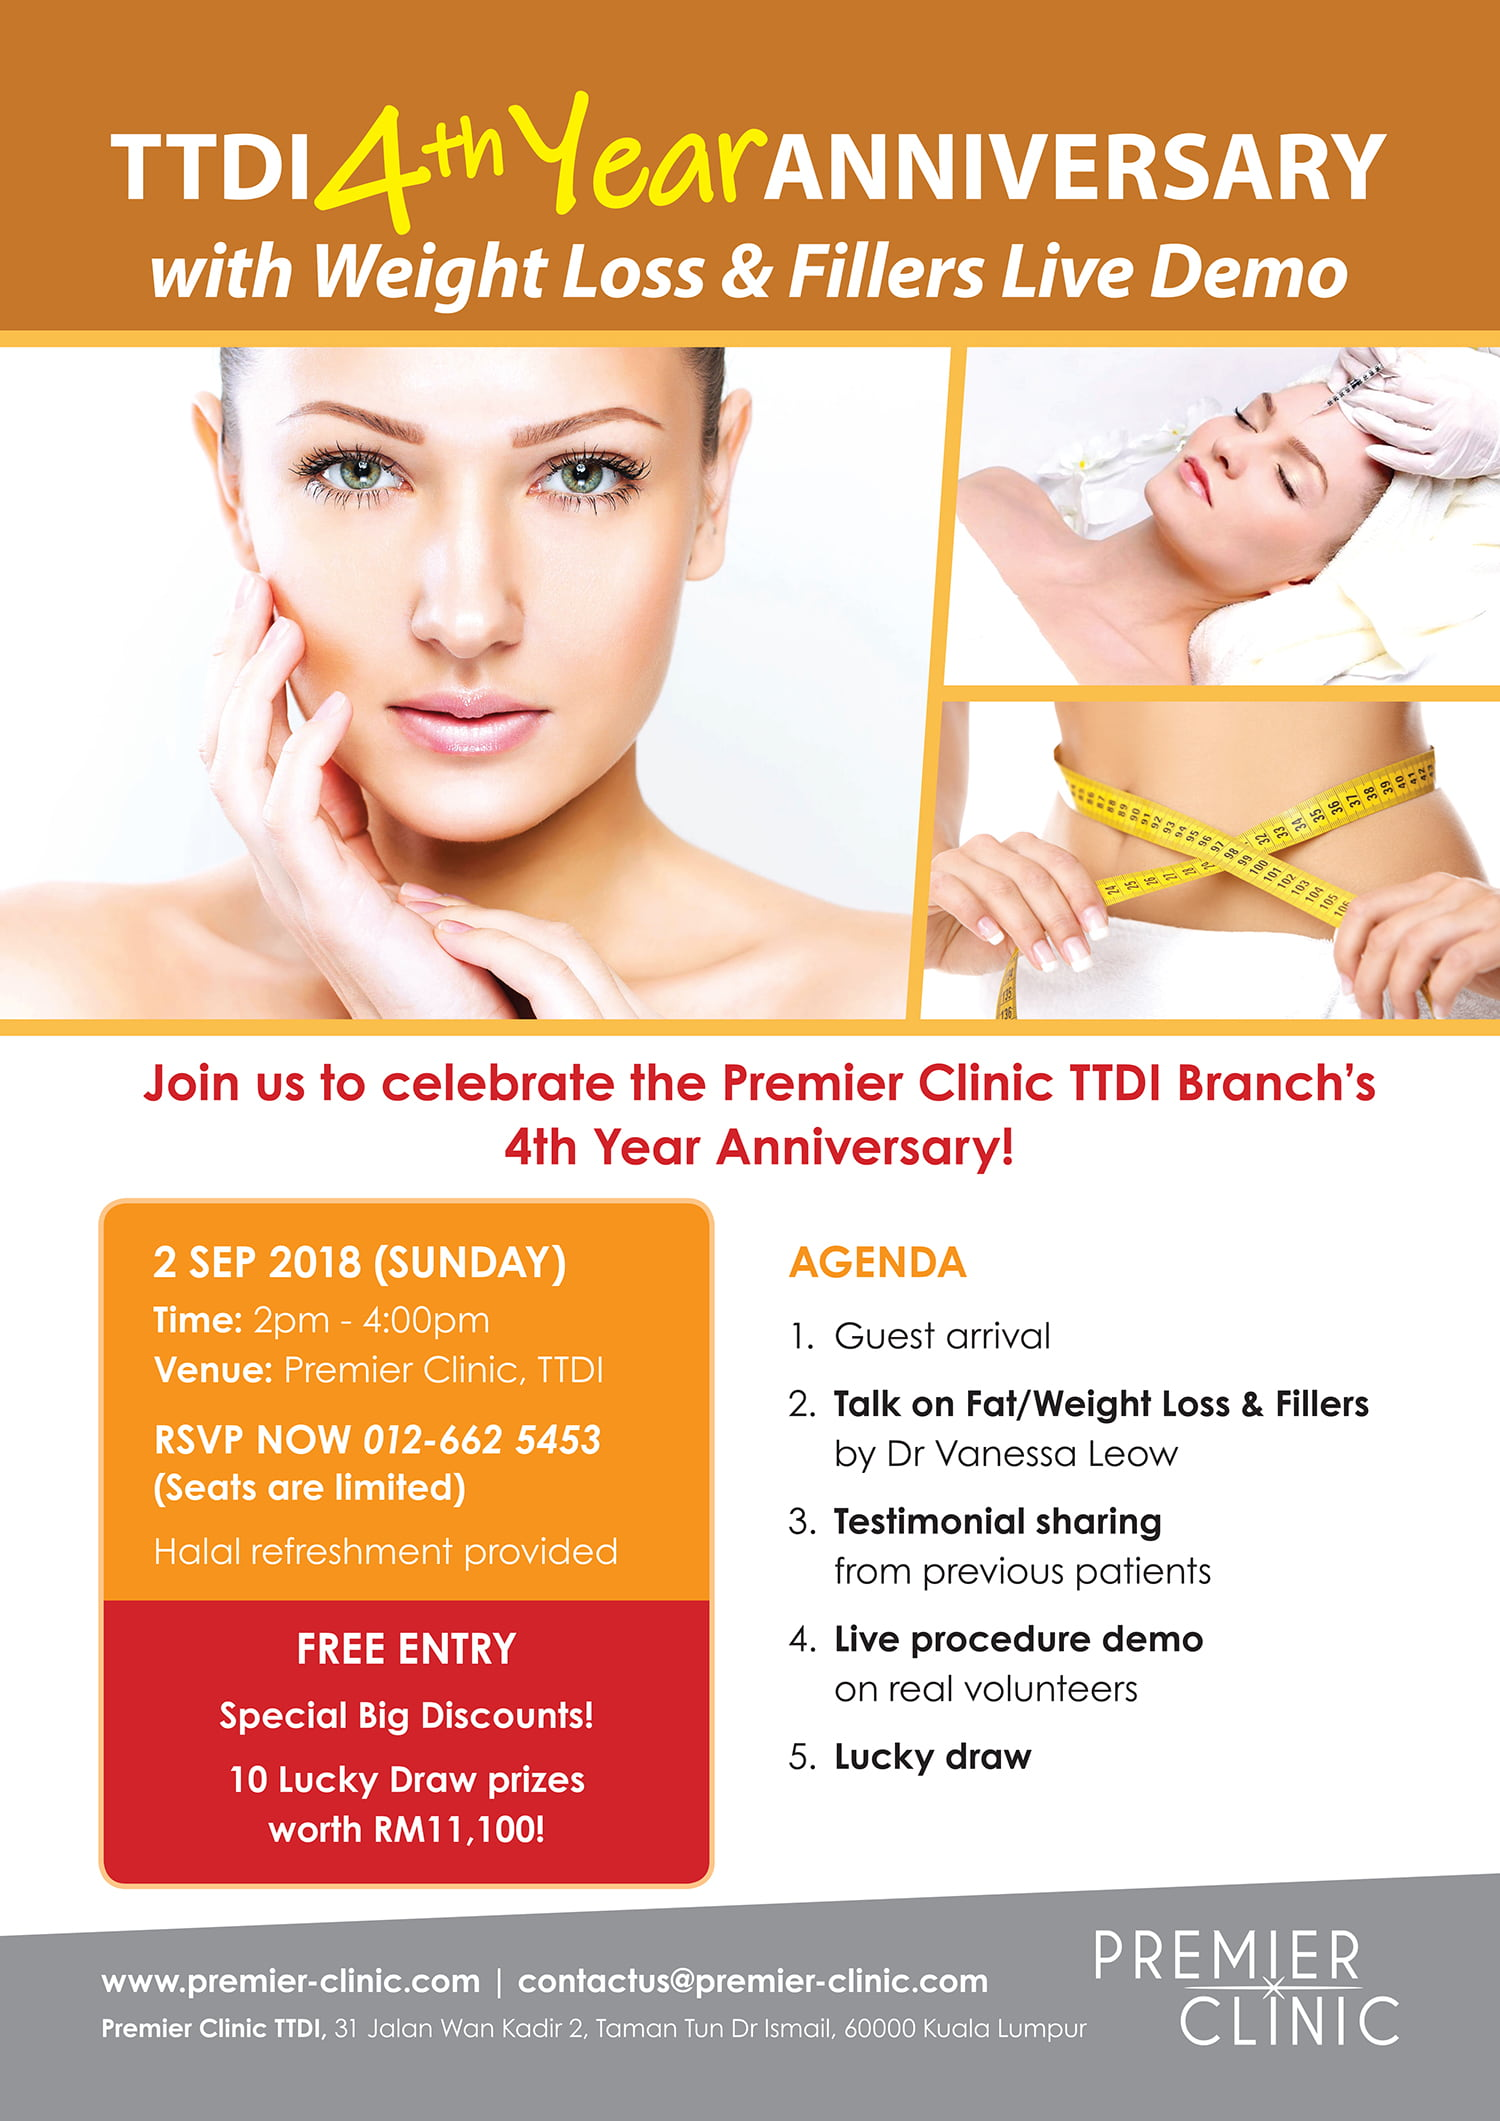 PREMIER CLINIC: TTDI BRANCH'S 4 TH YEAR ANNIVERSARY!